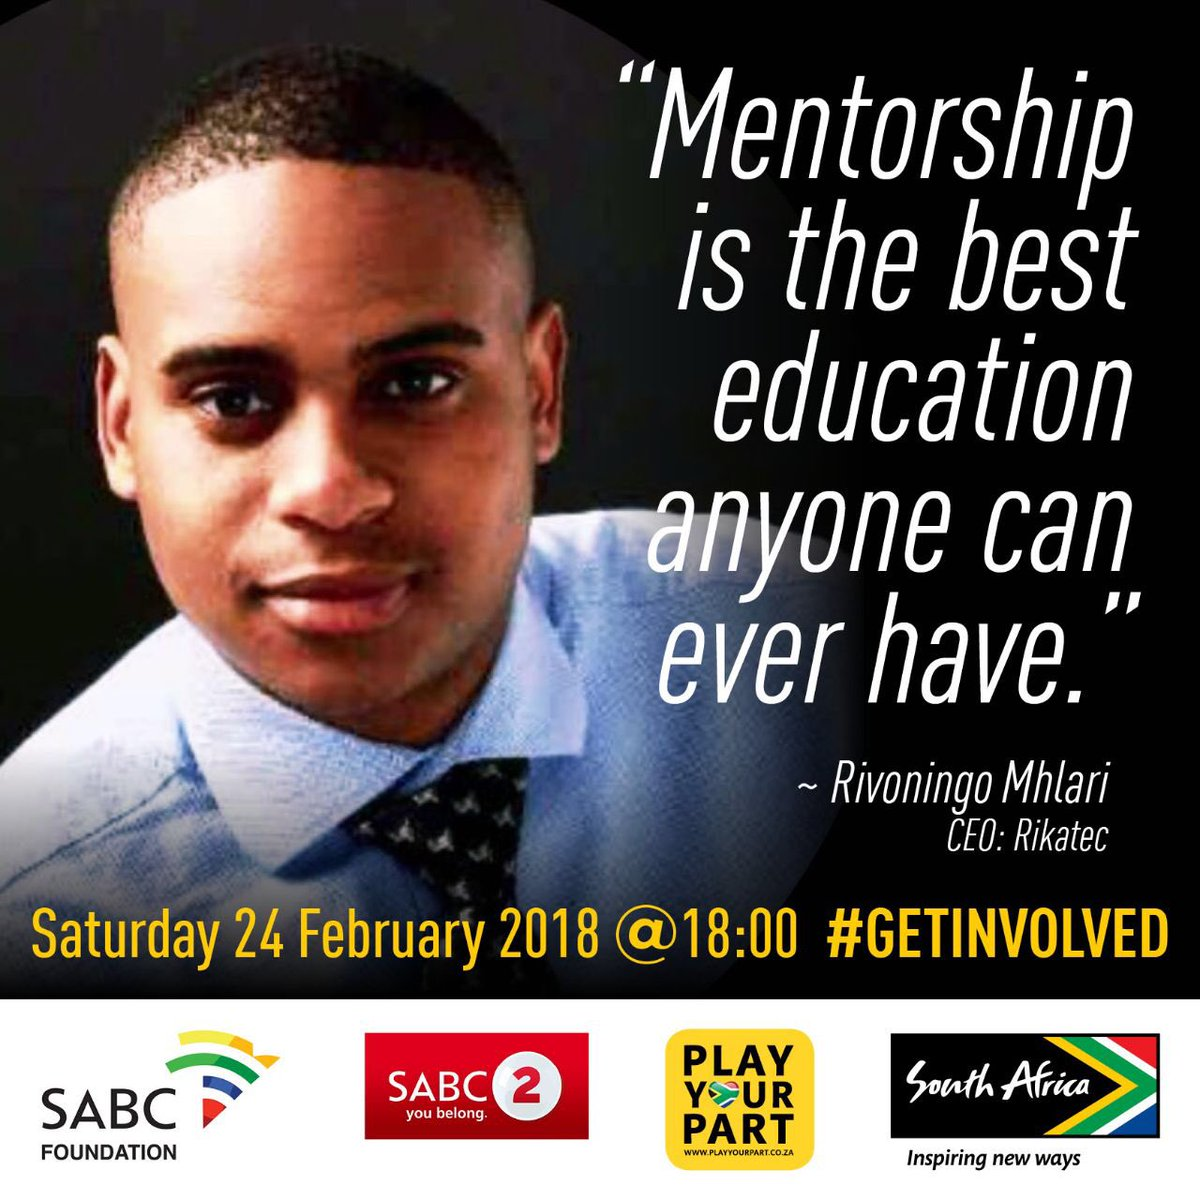 Meet Rivoningo Mhlari, the young entrepreneur who founded Rikatec